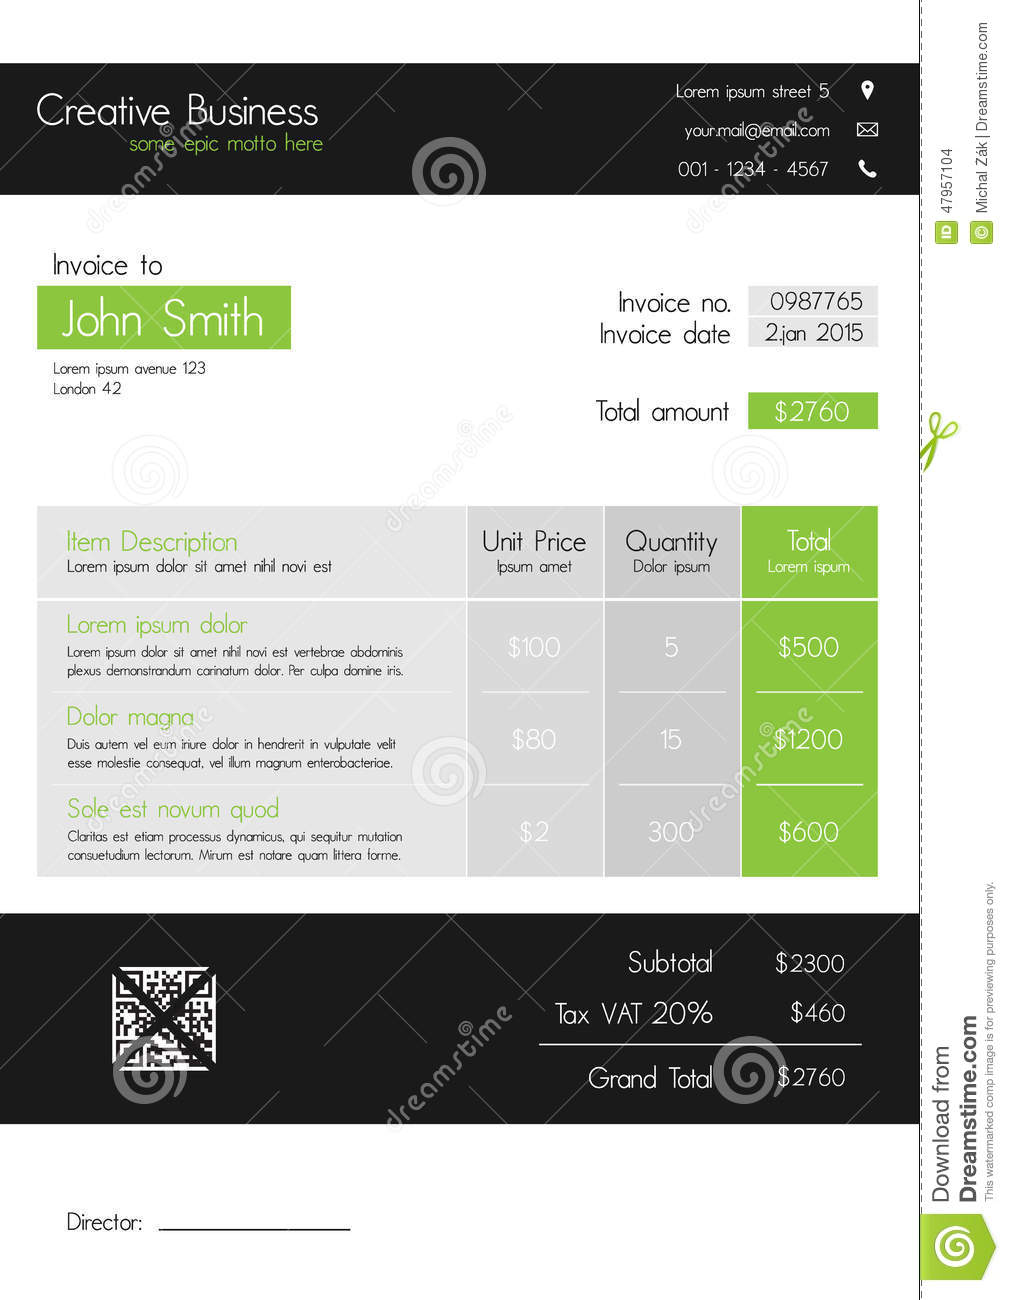 Invoice Template Clean Modern Style Of Green And Grey